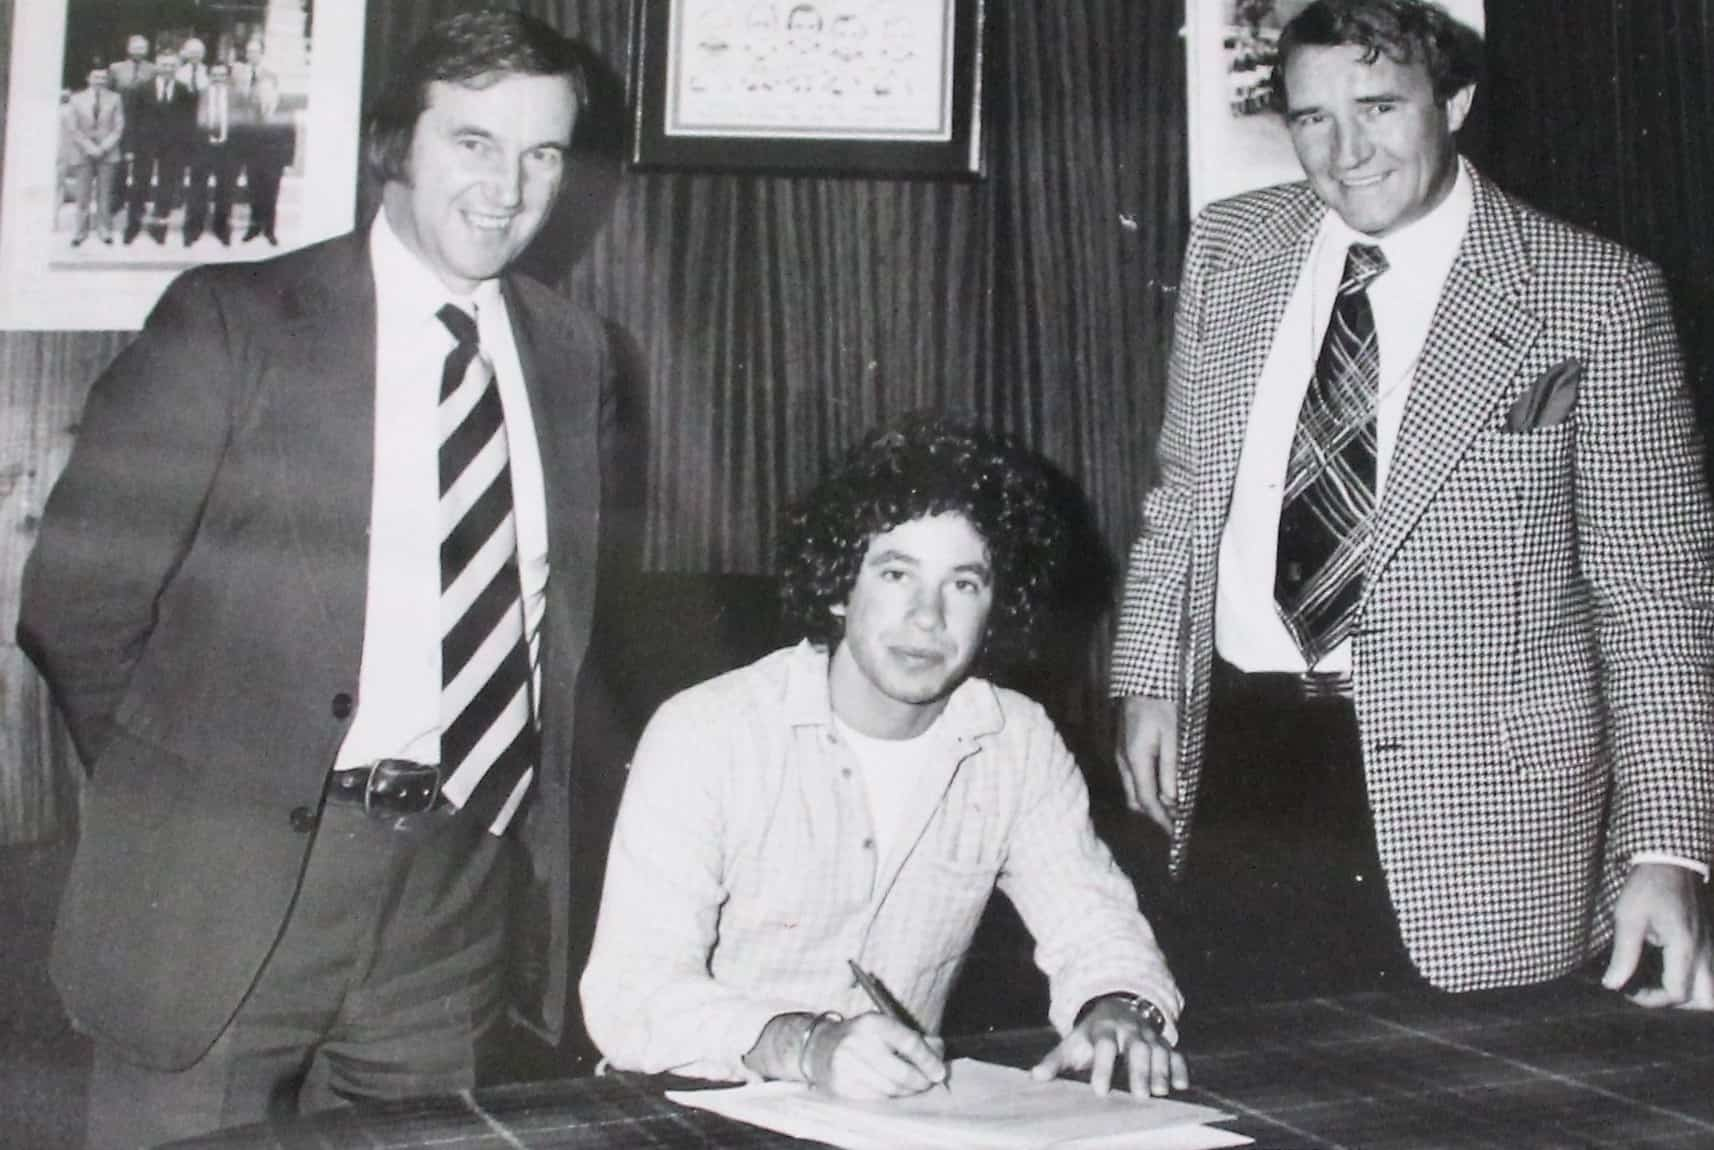 ... including the signing of Barry Silkman in 1978, pictured here with Malcolm Allison in his second spell as manager